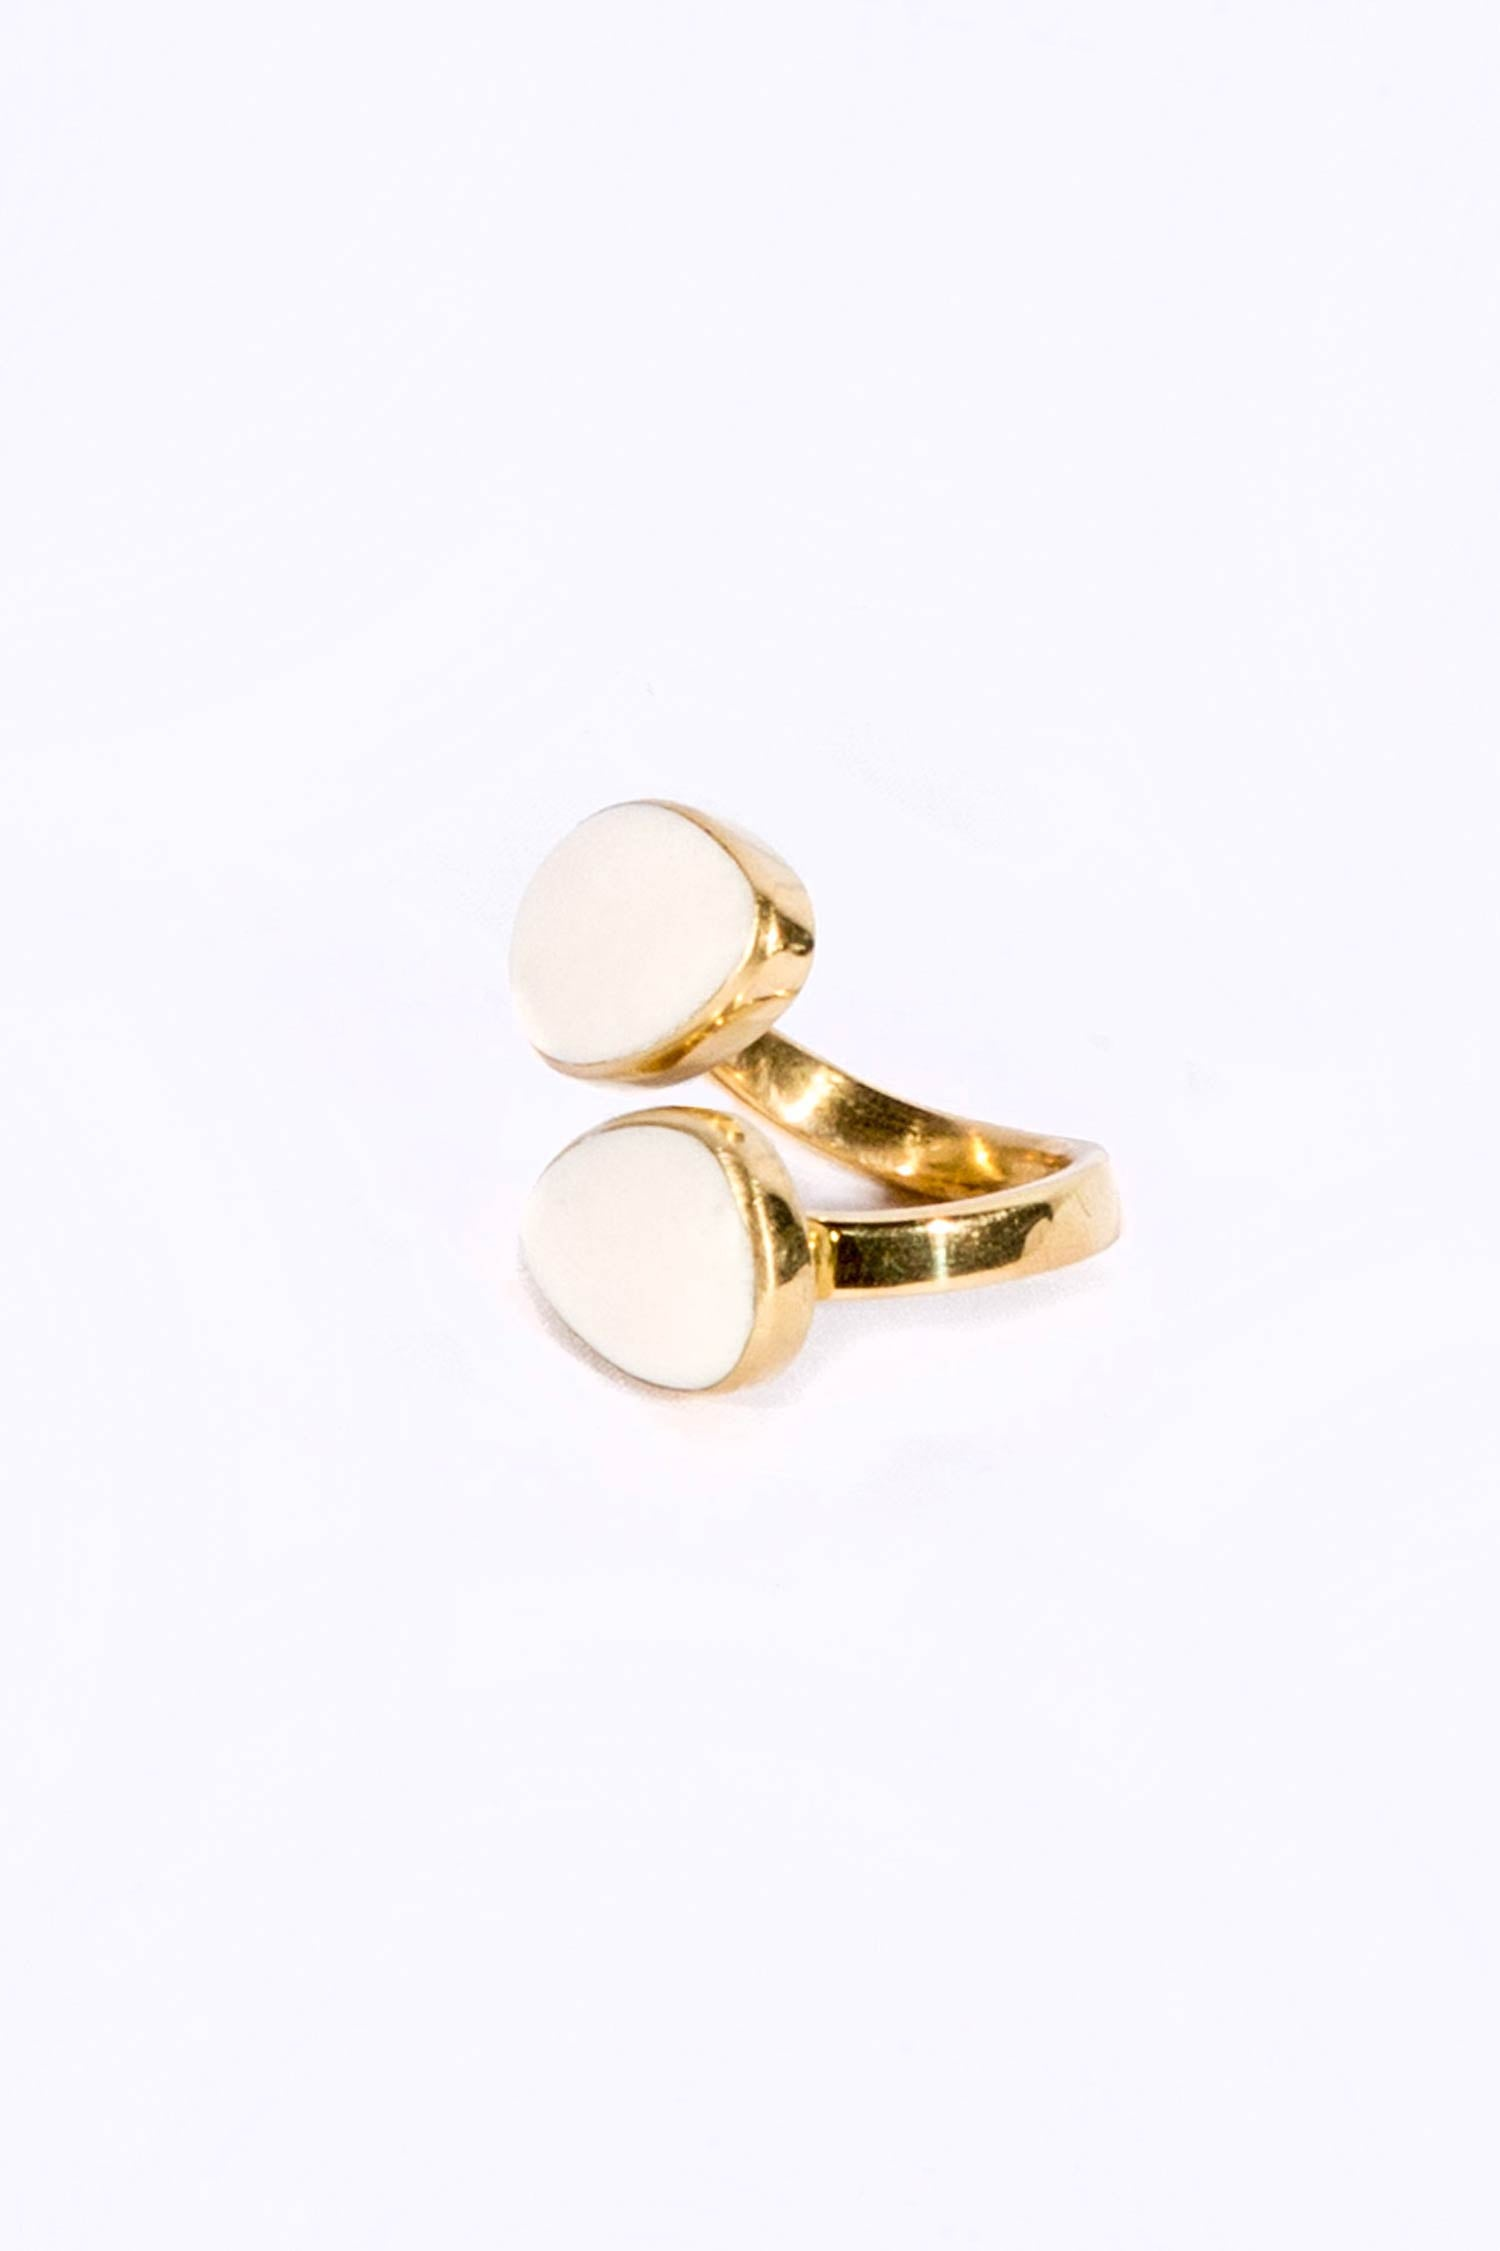 Womens Ethical Jewelry Ring | Brass Indra Horn Statement Ring by Soko